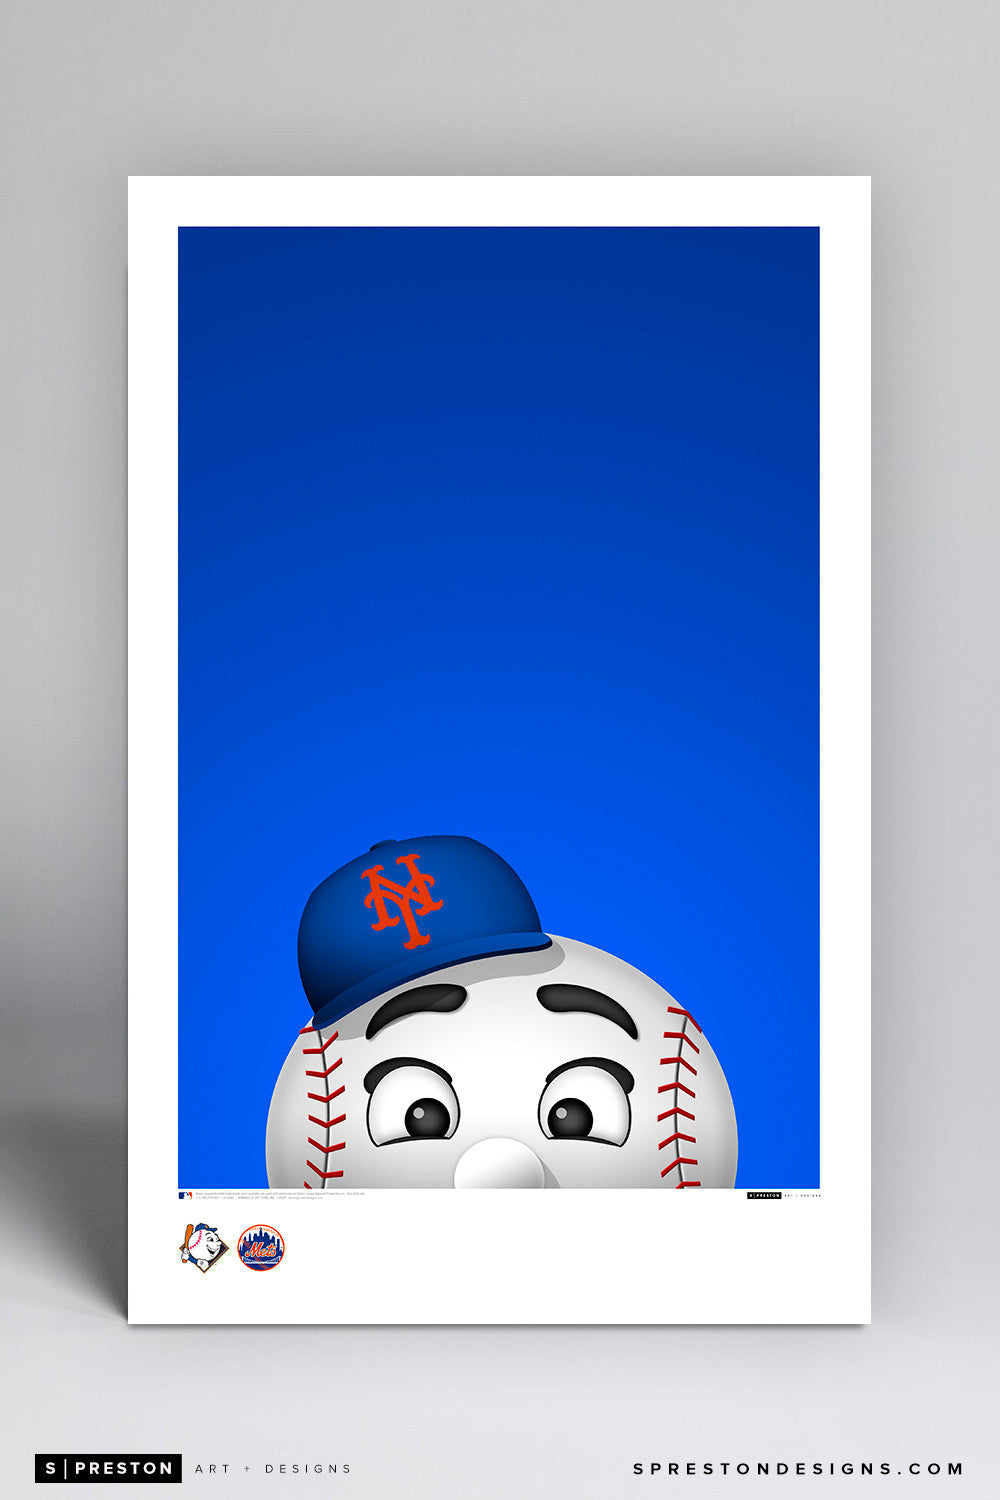 Minimalist Mr. Met Poster Print New York Mets - S Preston